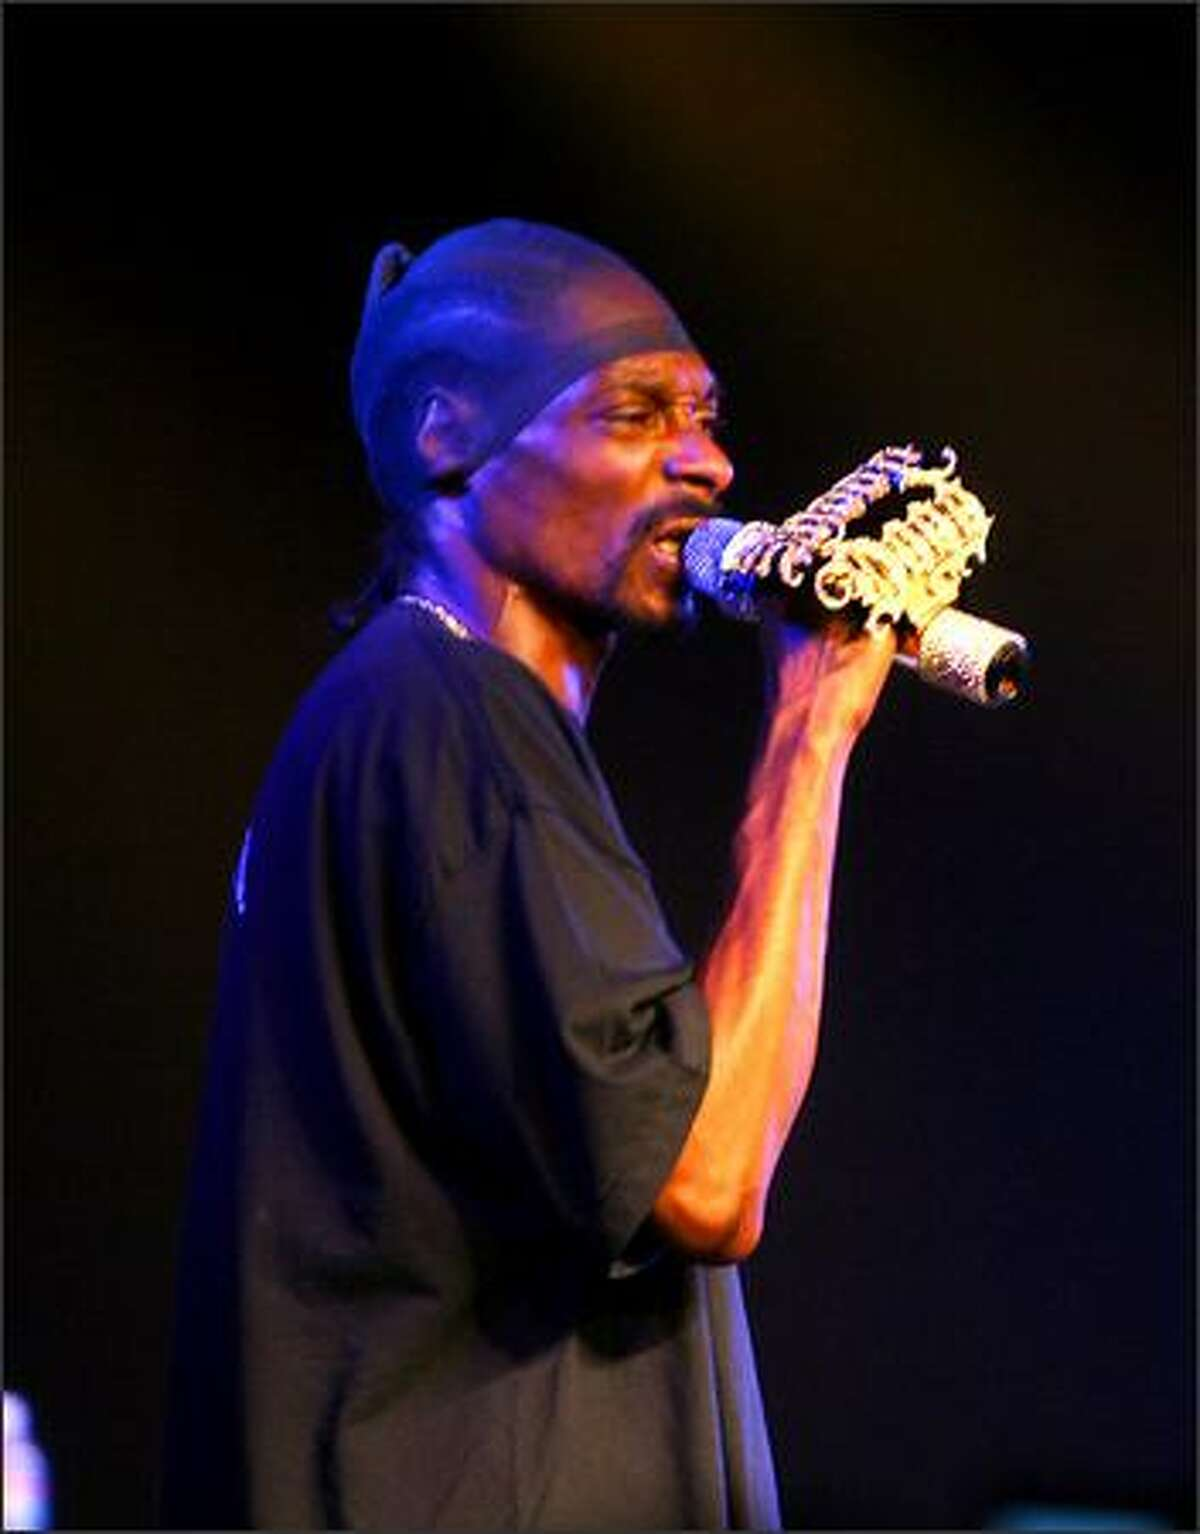 Rapper Snoop Dogg performs at Snoop Dogg's West Fest.